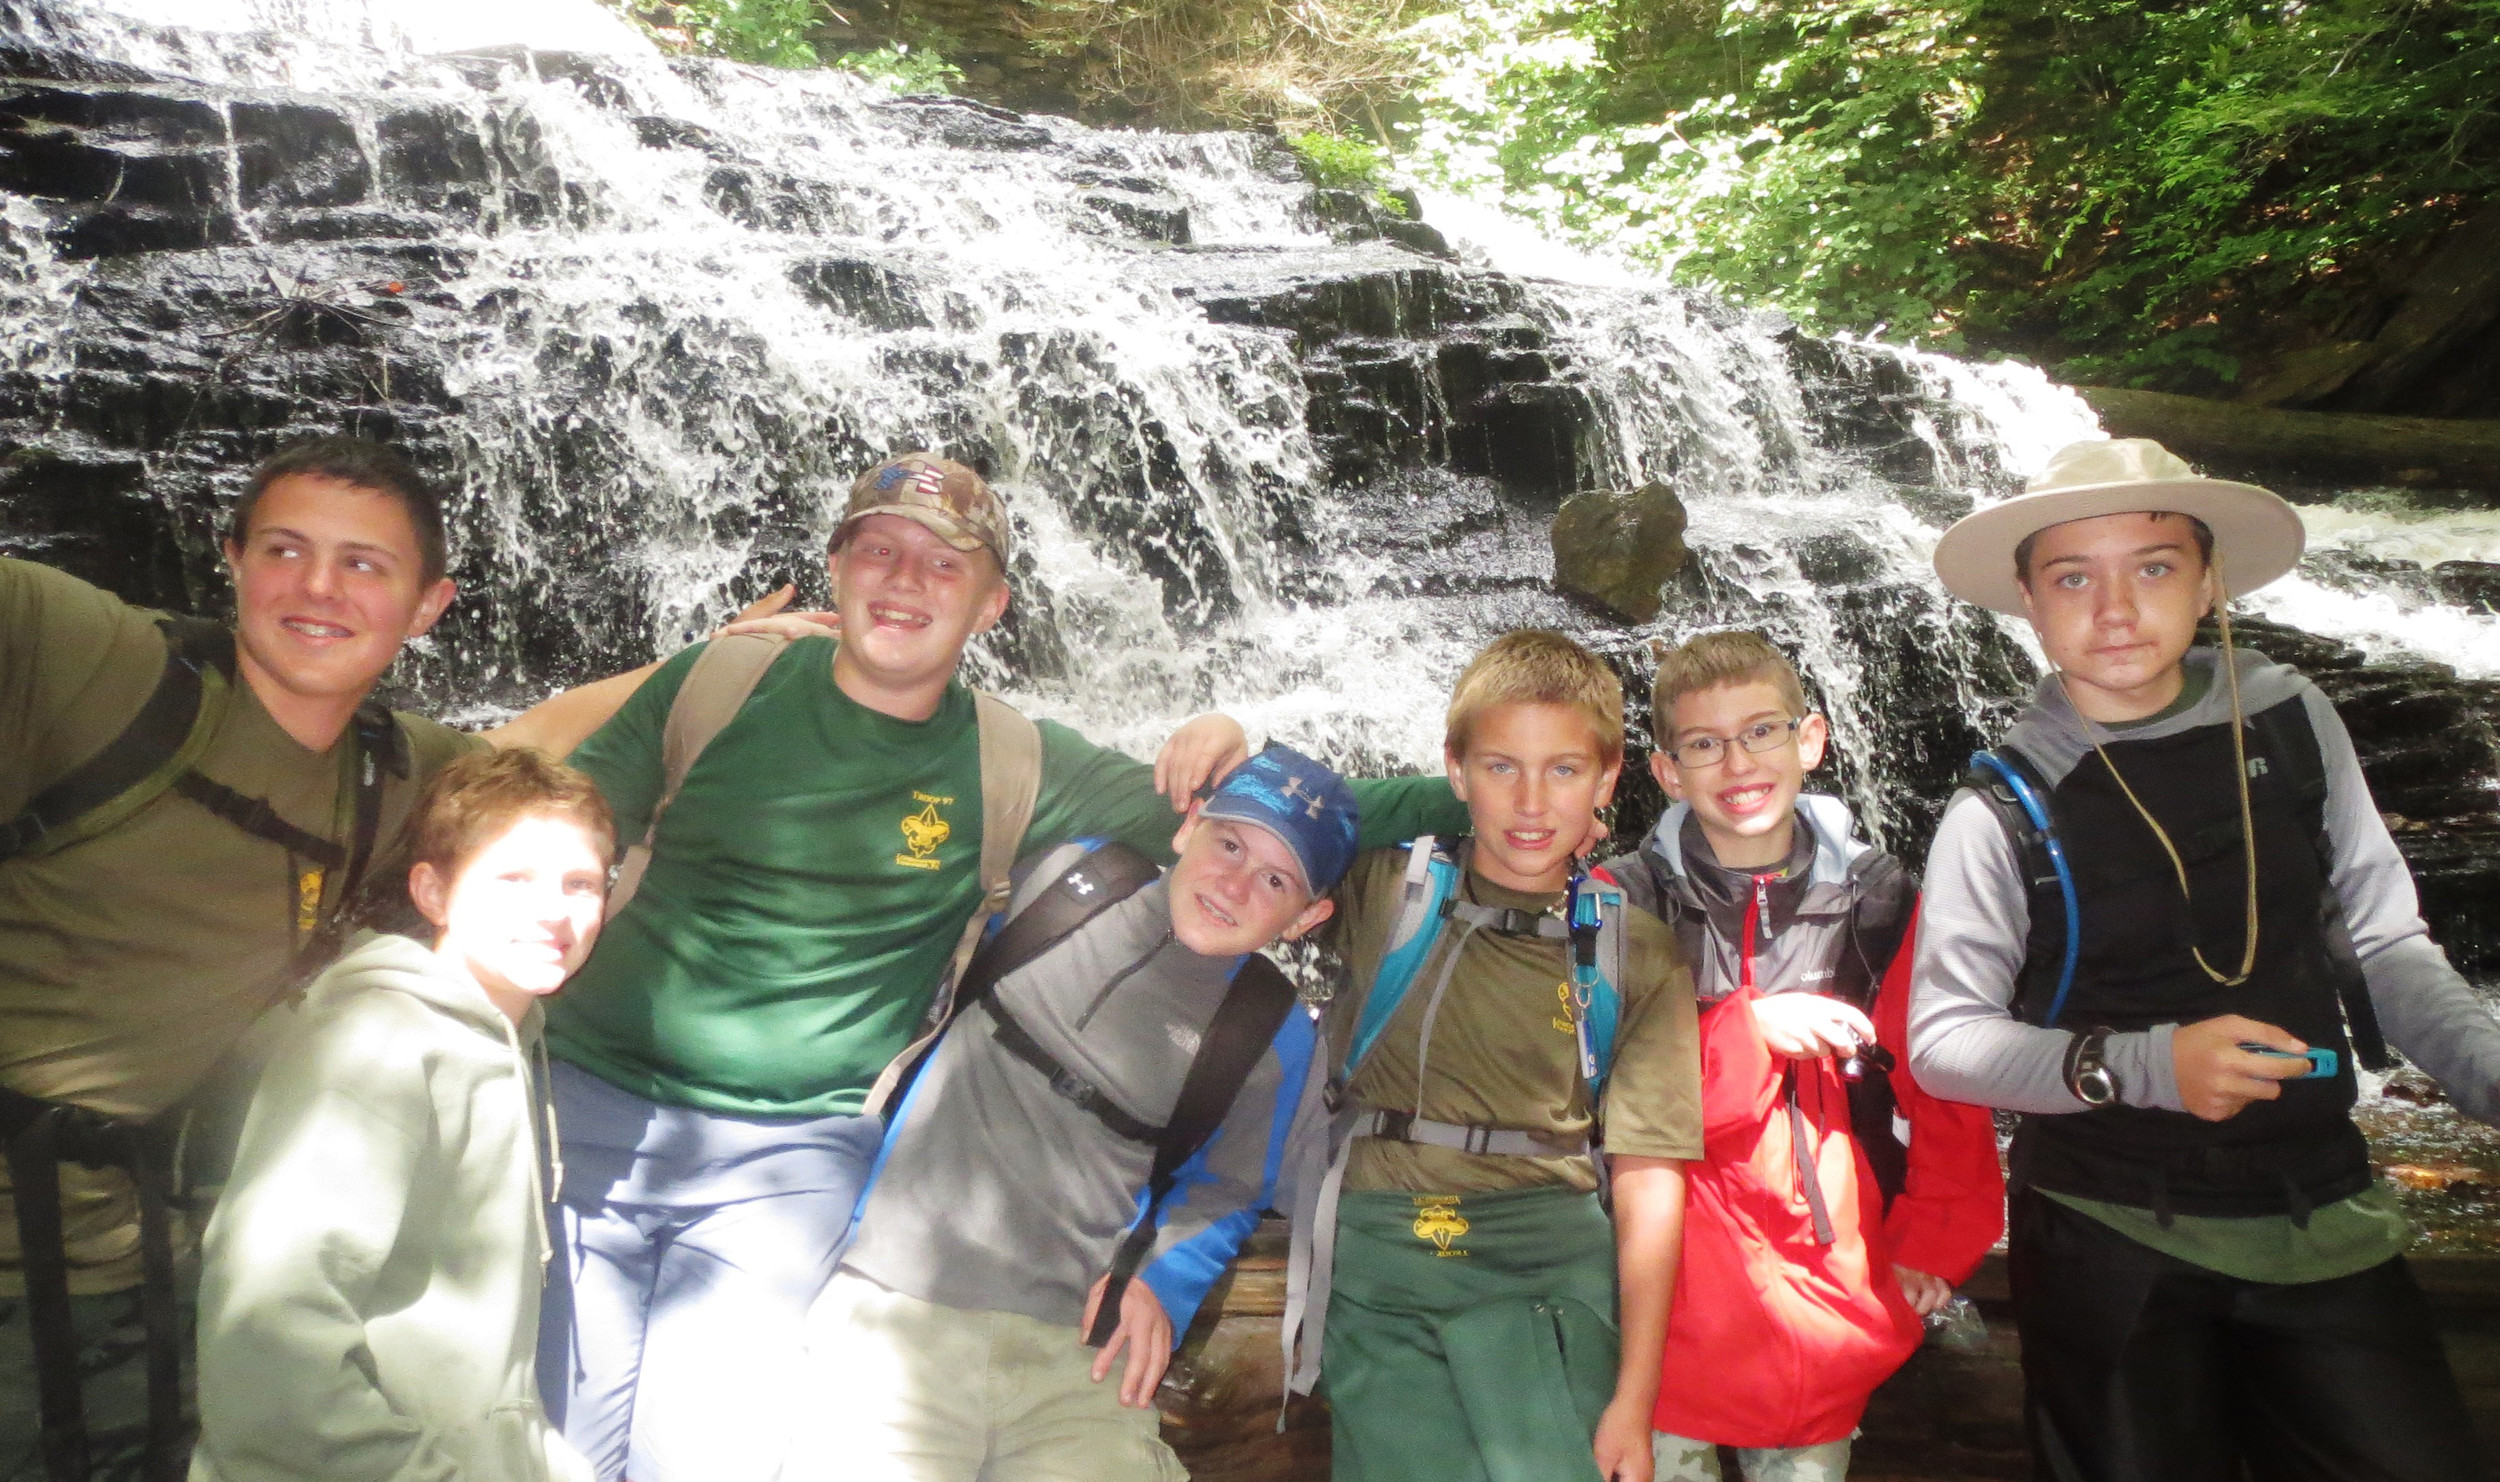 Ben Spangenberg, Bryson Harris, Mason Swartz, Luke Spangenberg, Leo Nissley, Joe Myers and Mason Barrick laugh as Mother Nature tickles them with the spray from one of the waterfalls that they encountered during a campout at Ricketts Glen State Park.